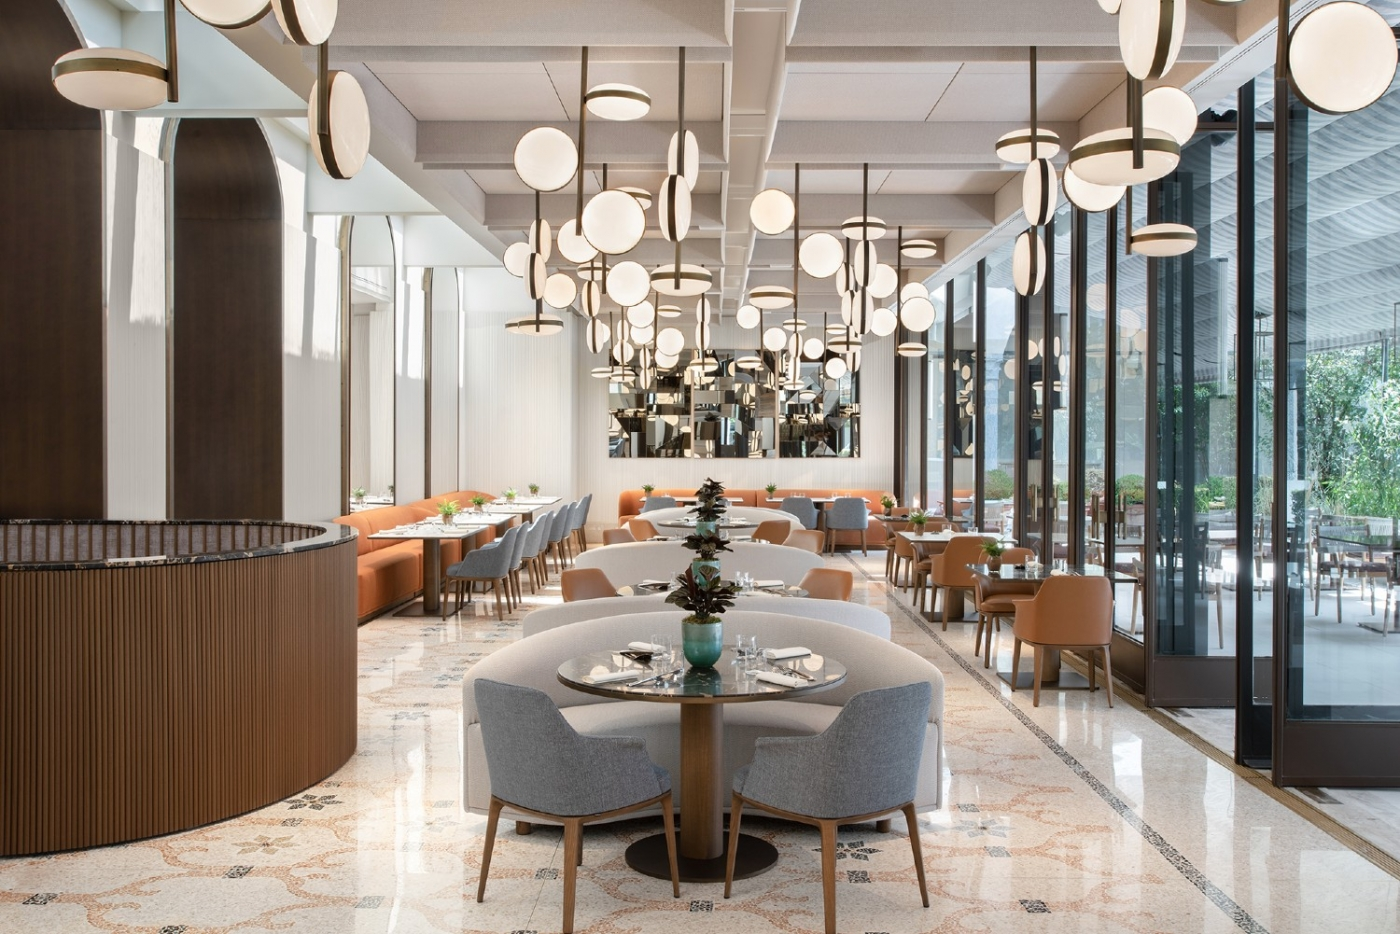 Four Seasons Hotel Milano Gets Revamped By Patricia Urquiola ft four seasons hotel milano Four Seasons Hotel Milano Gets Revamped By Patricia Urquiola Four Seasons Hotel Milano Gets Revamped By Patricia Urquiola ft 1400x934